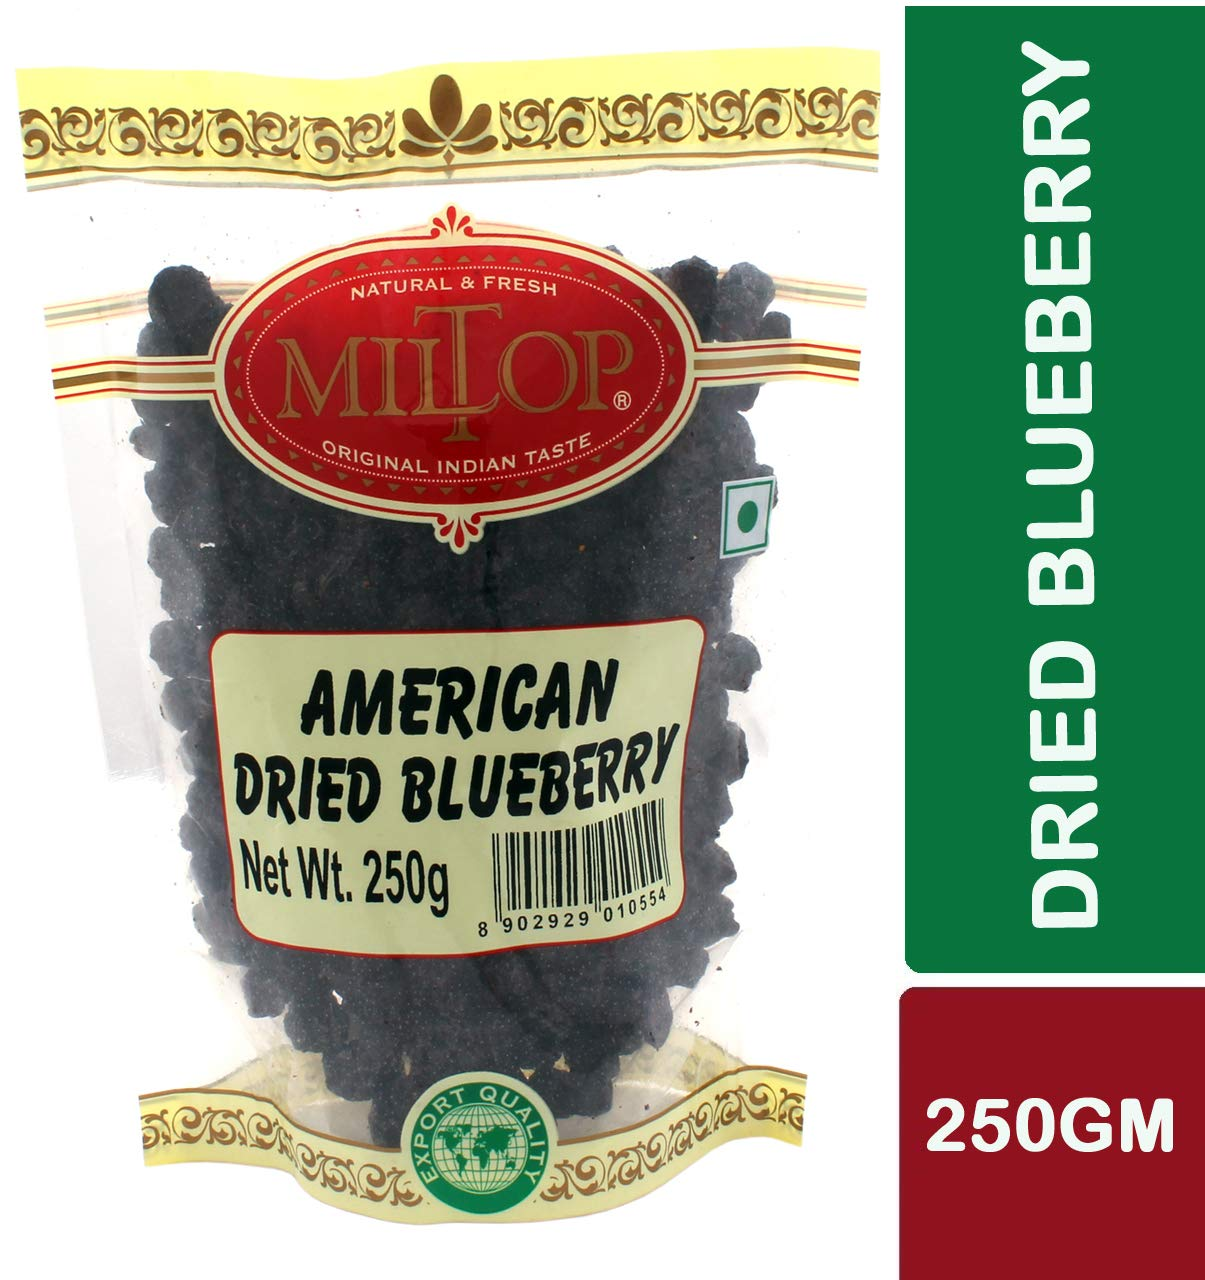 Miltop American Dried Blueberries, 250g